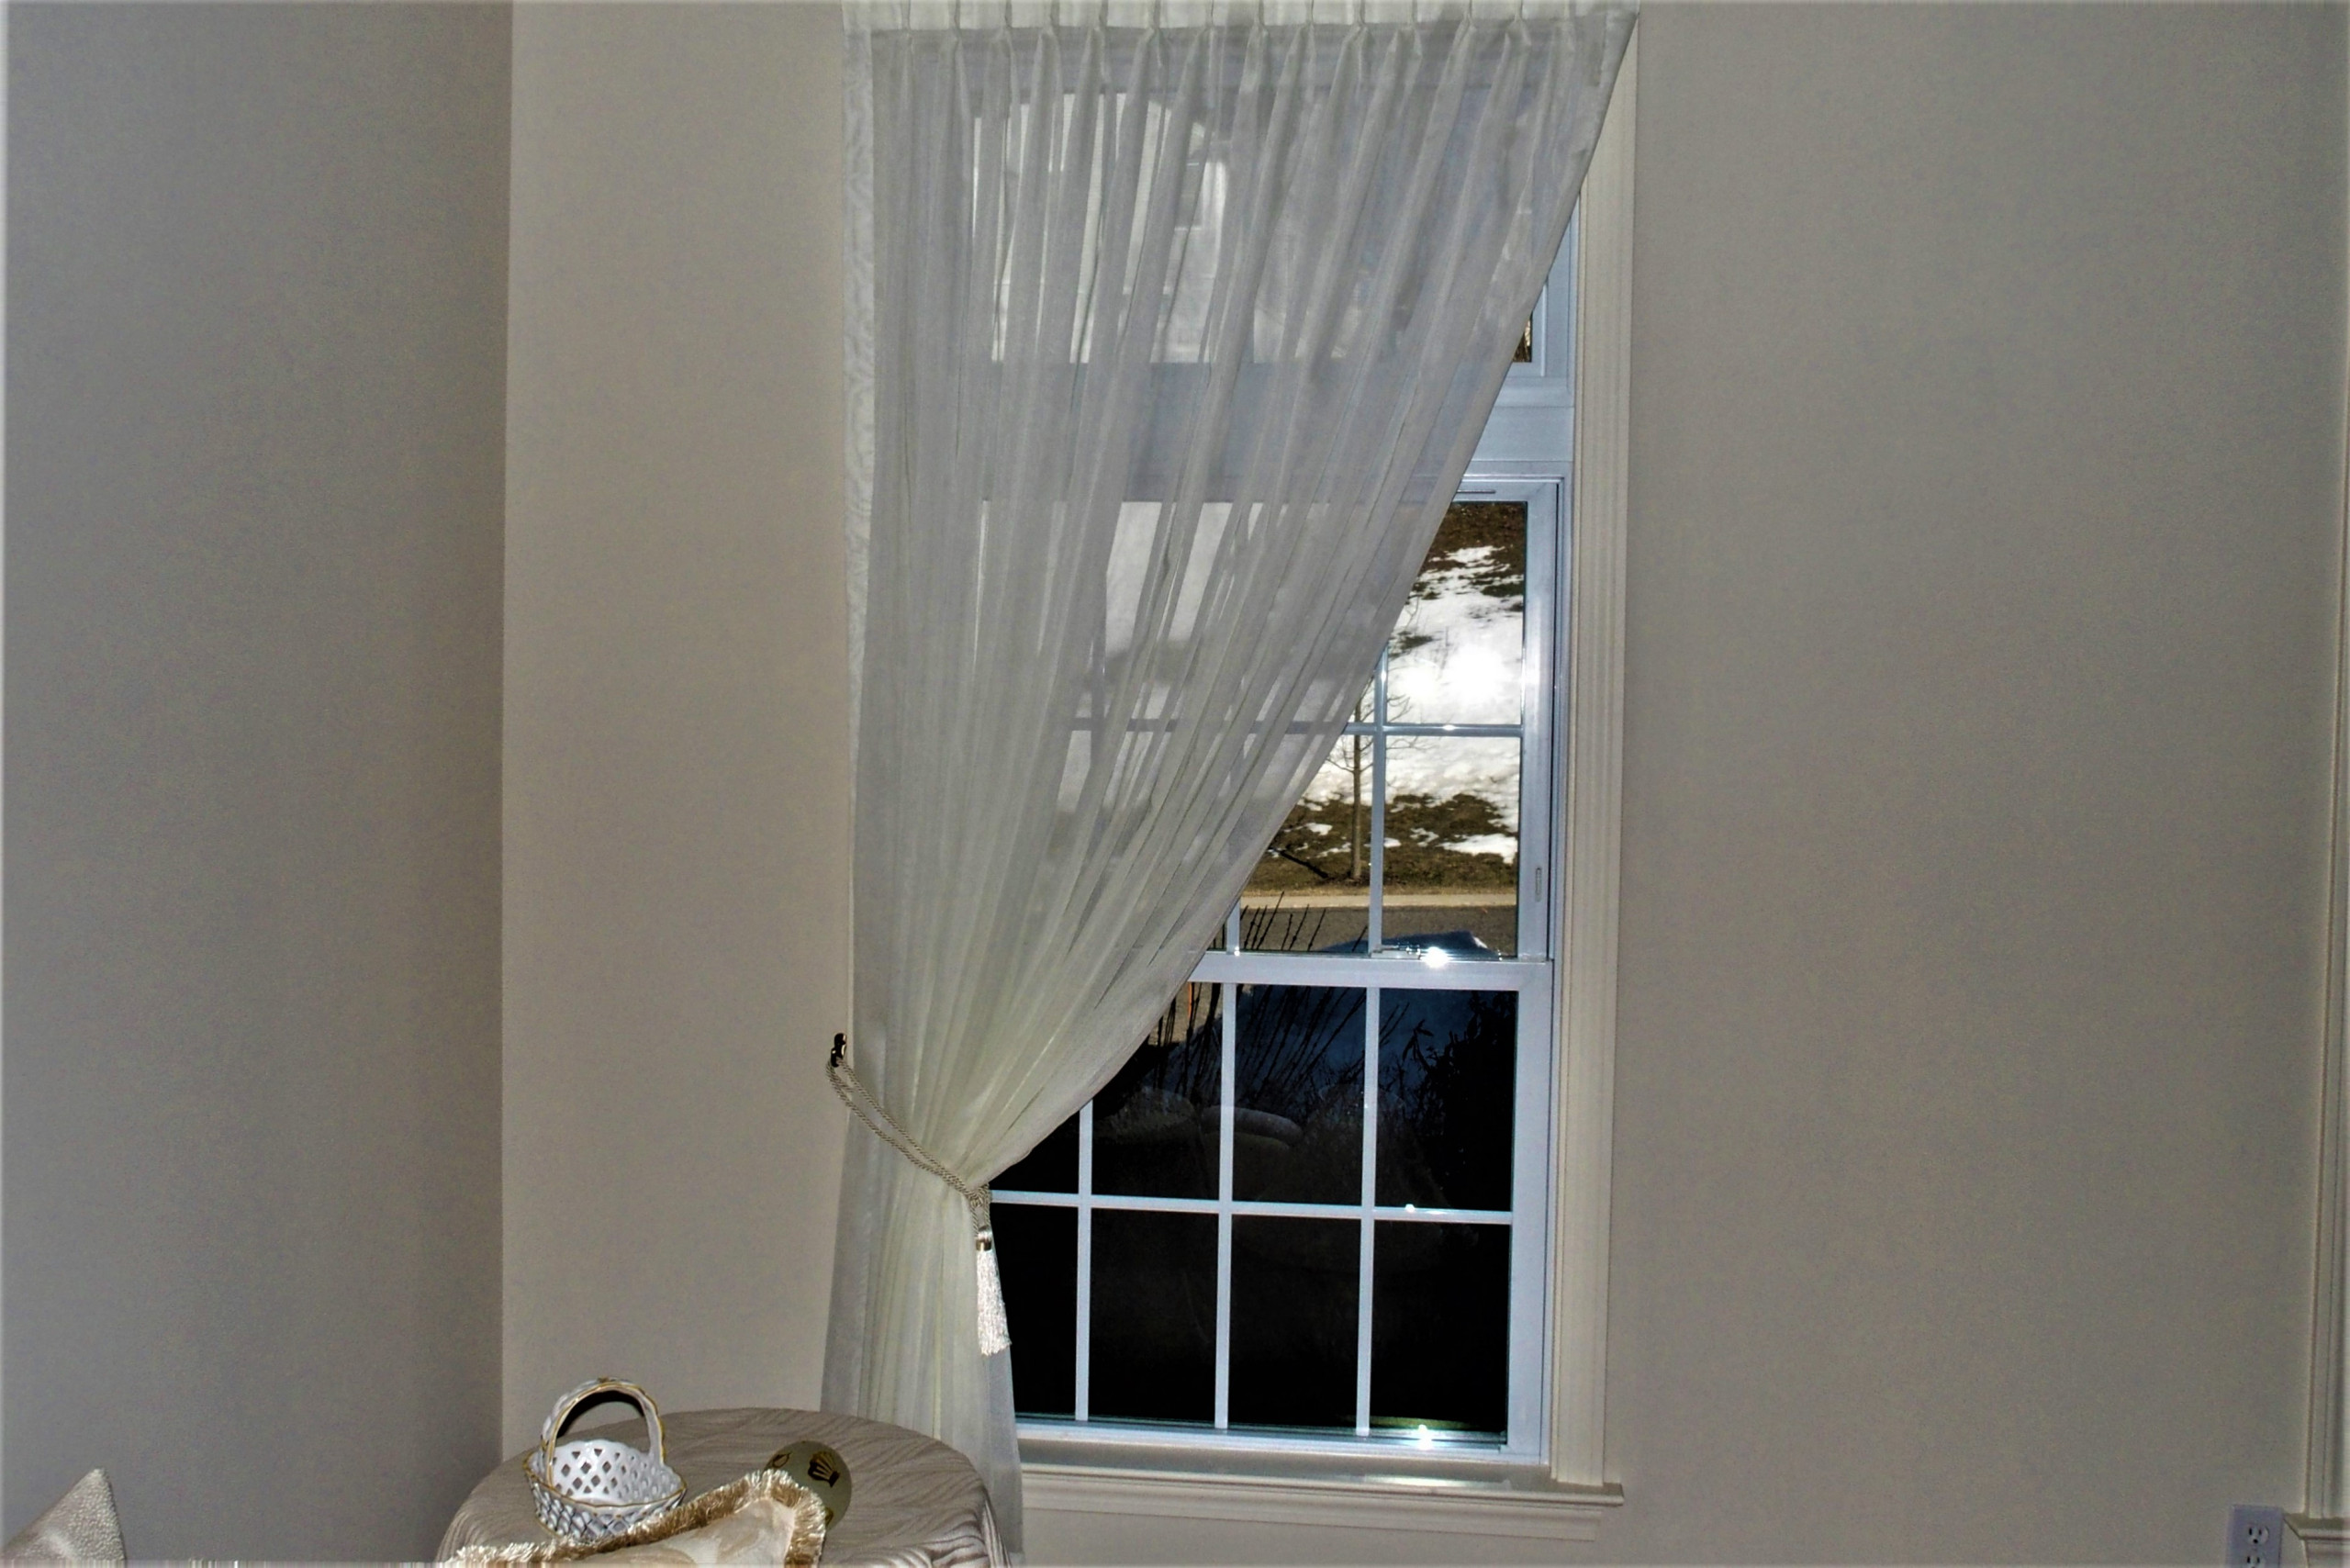 Window treatments in free standing home in a 55 and older community